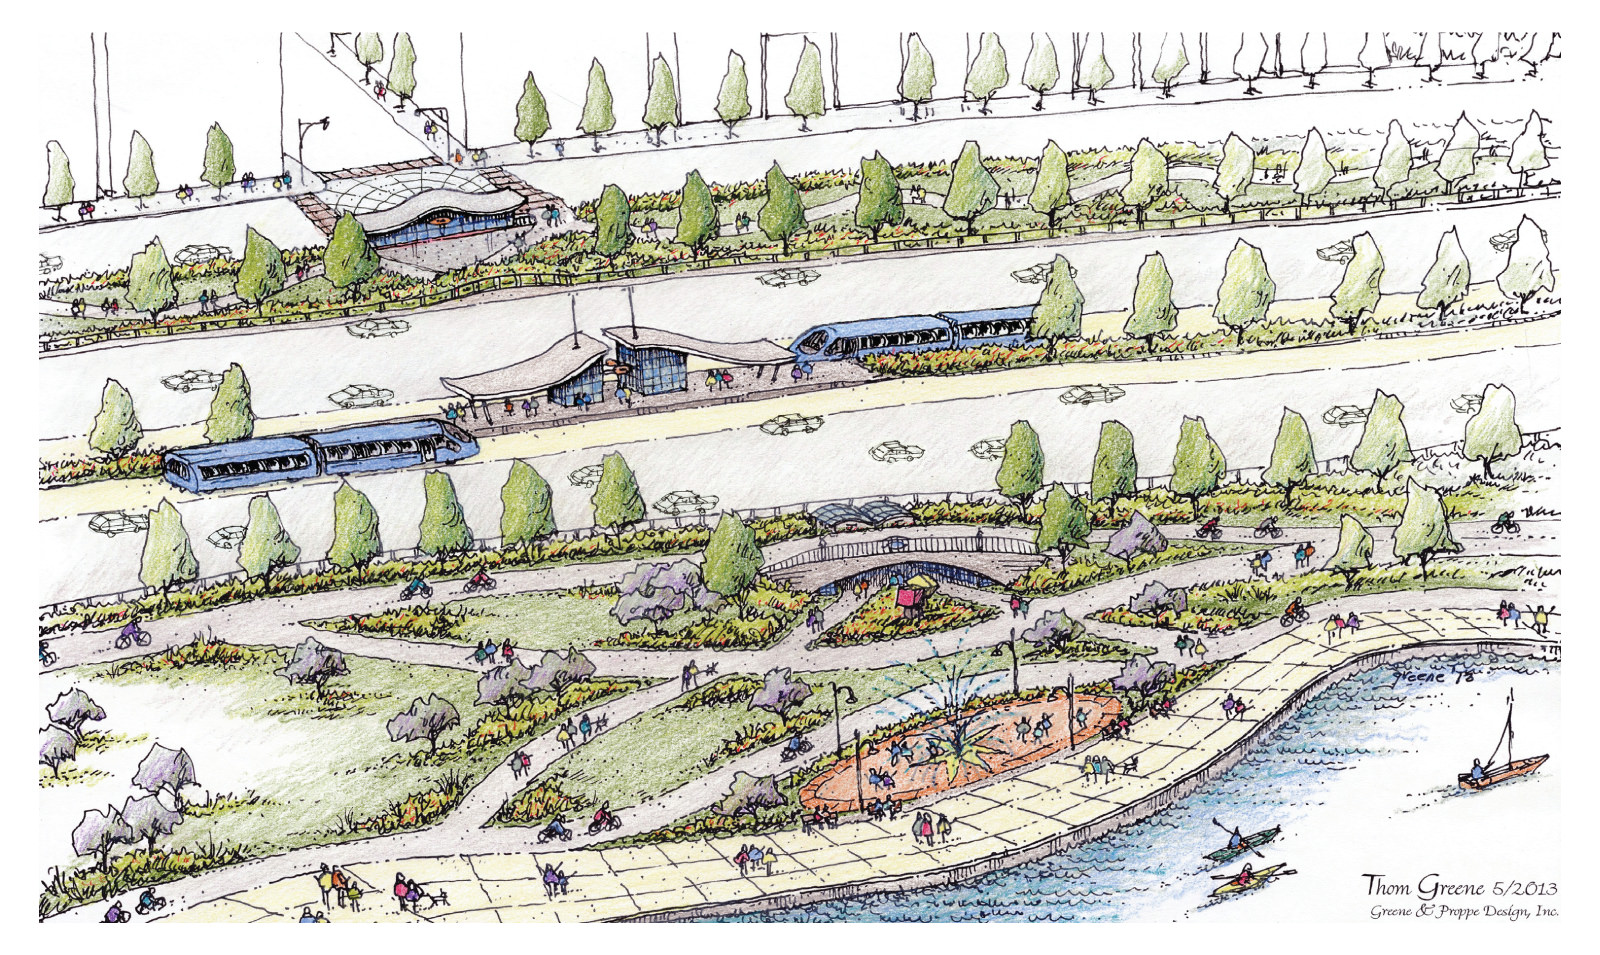 A vision of North Lake Shore Drive with rapid transit corridors and separated walking and biking paths published by 15 local civic organizations in July 2013.